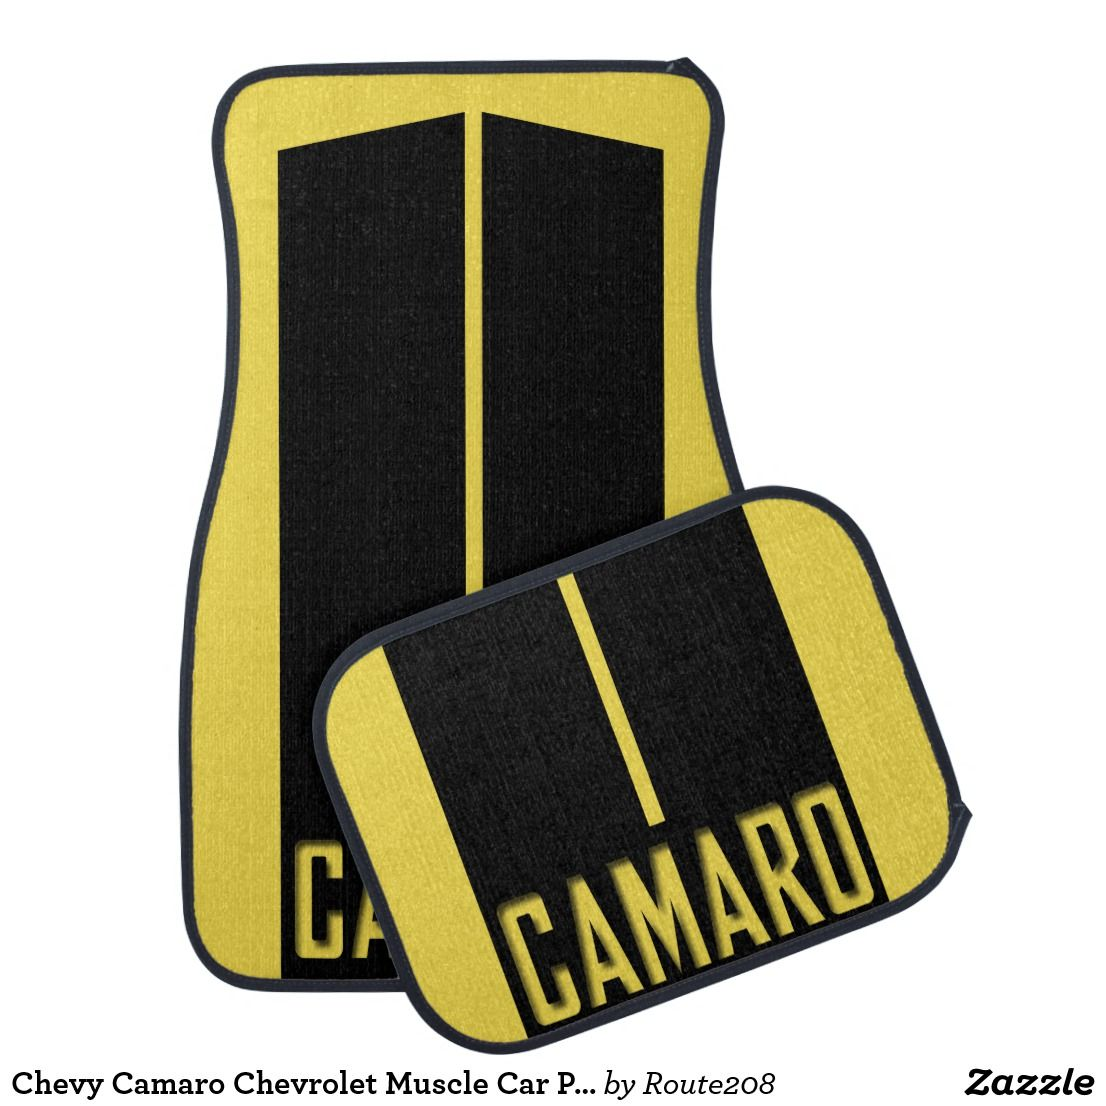 Chevy Camaro Chevrolet Muscle Car Pick Your Color Floor Mats Like Bumble Bee Transformers Camaro Camaro Car Chevy Camaro